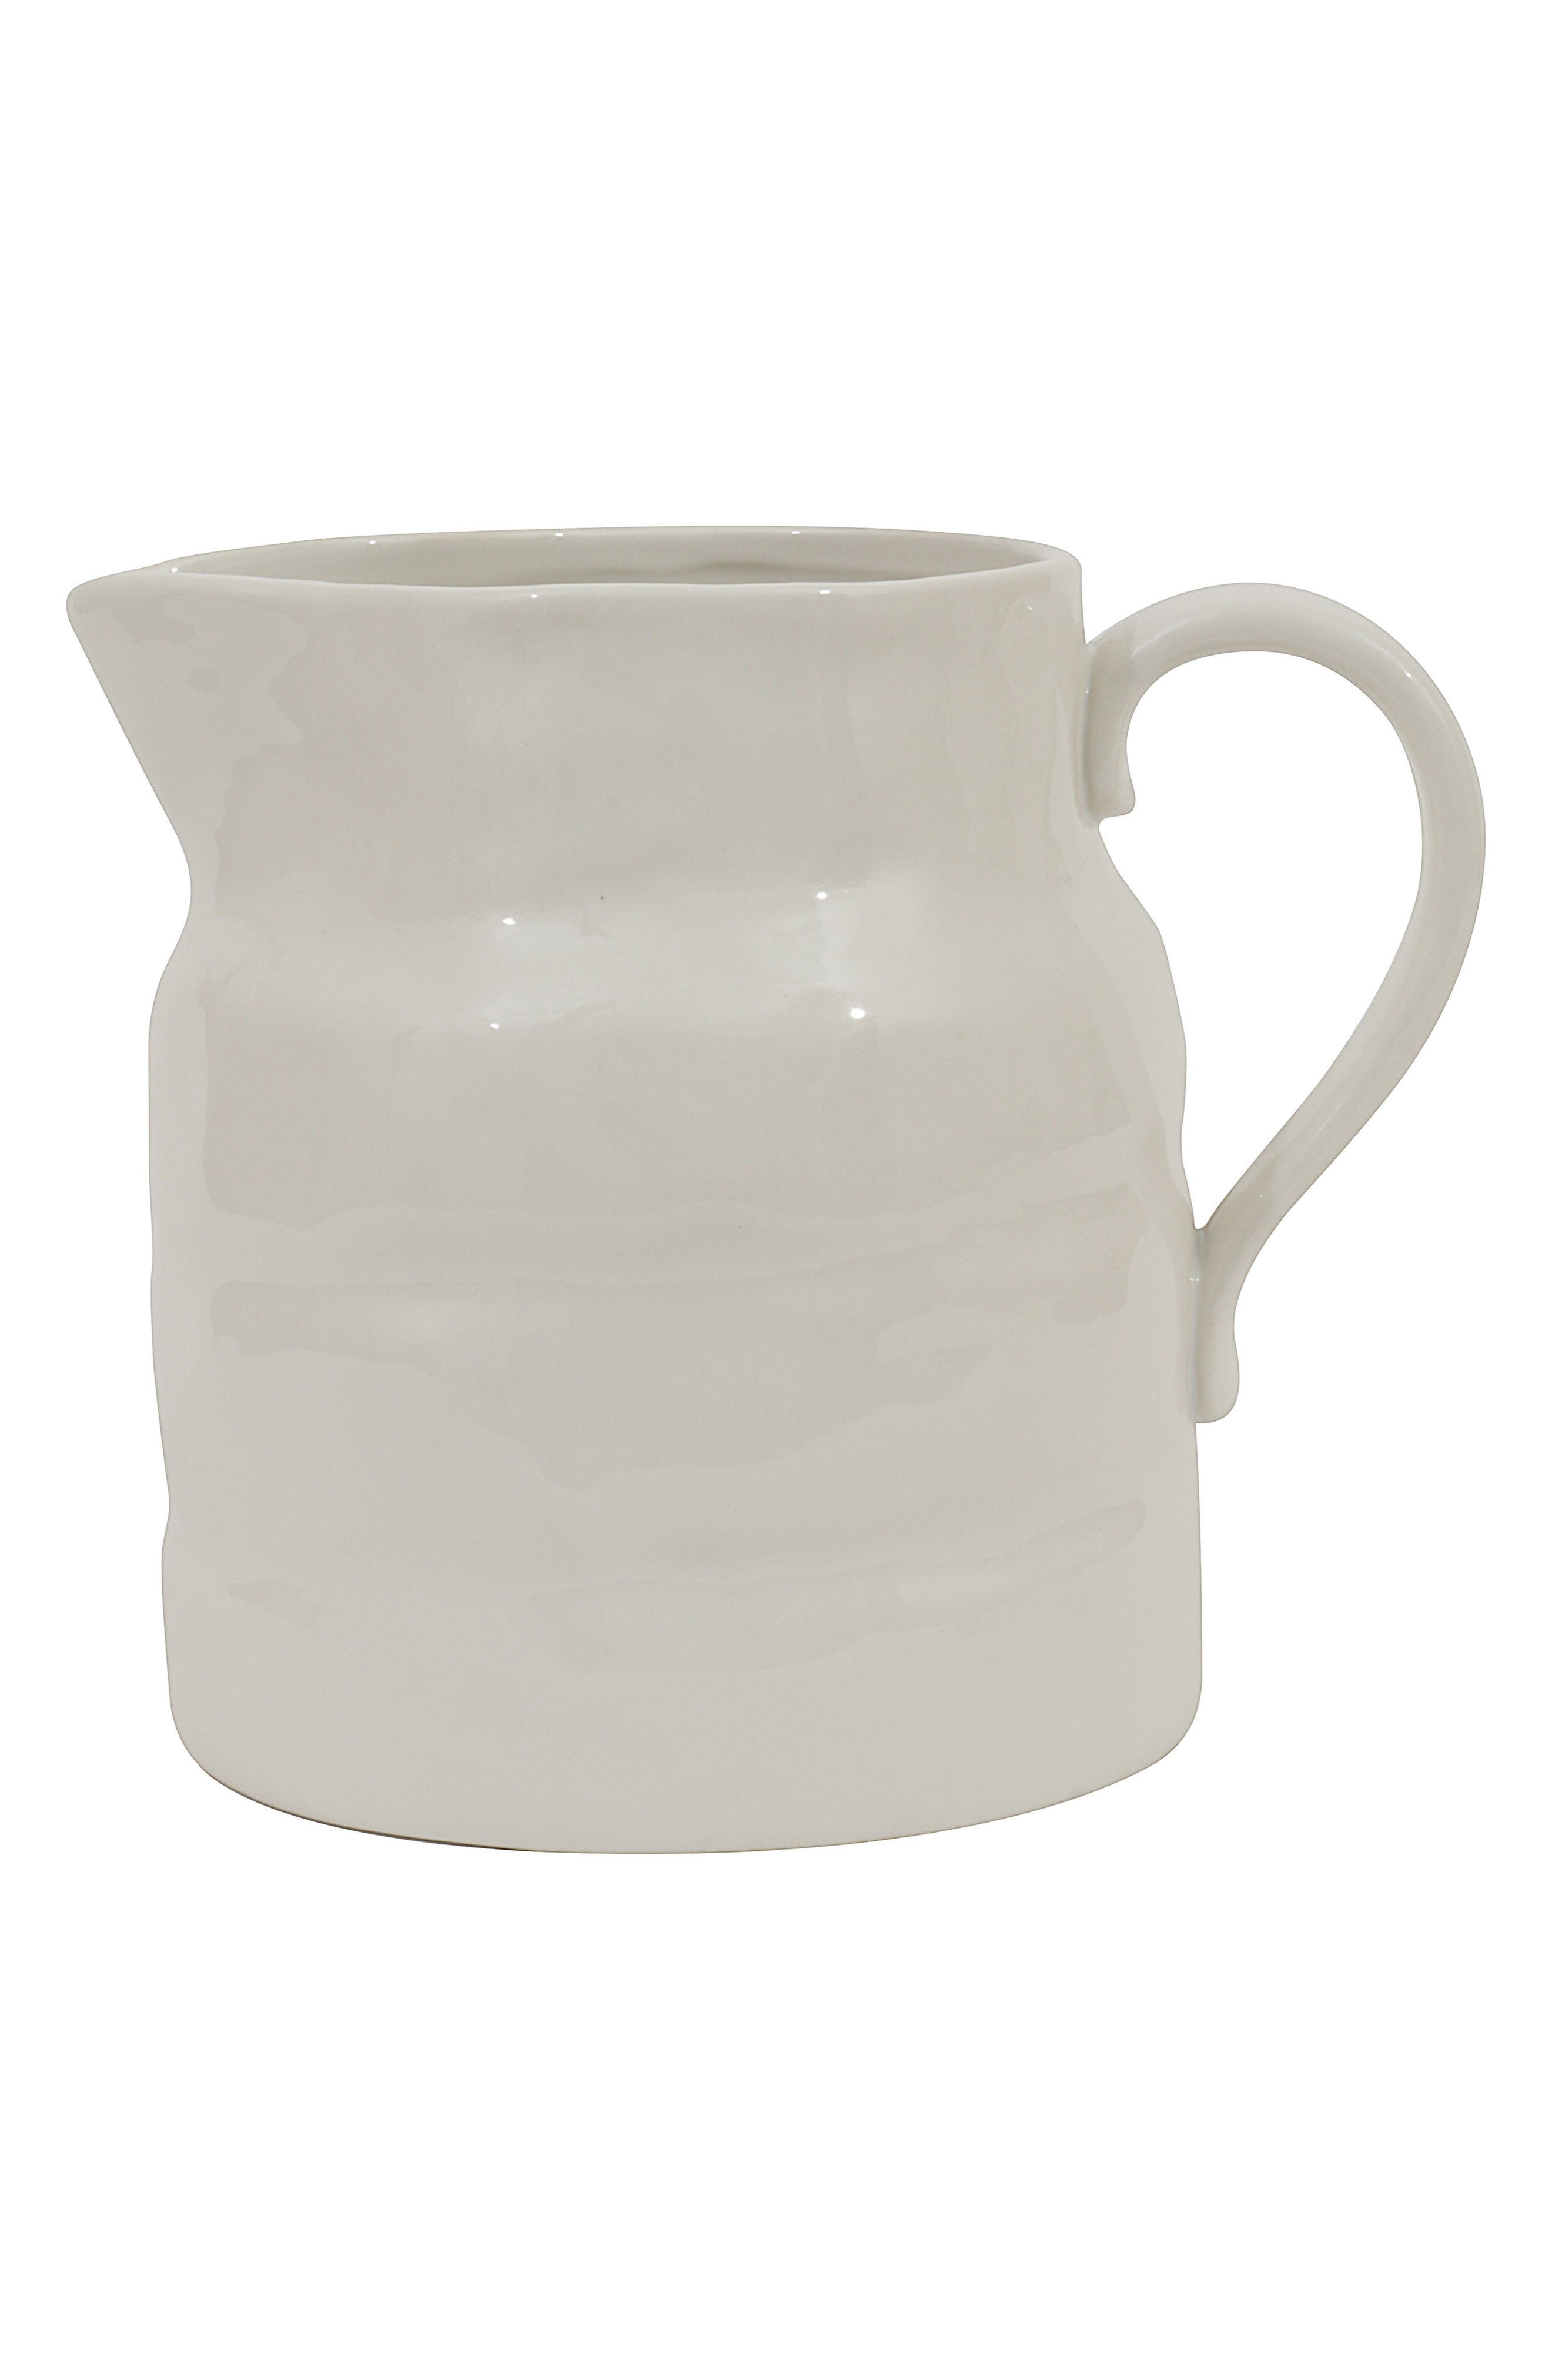 Large Ceramic Pitcher,                             Main thumbnail 1, color,                             White